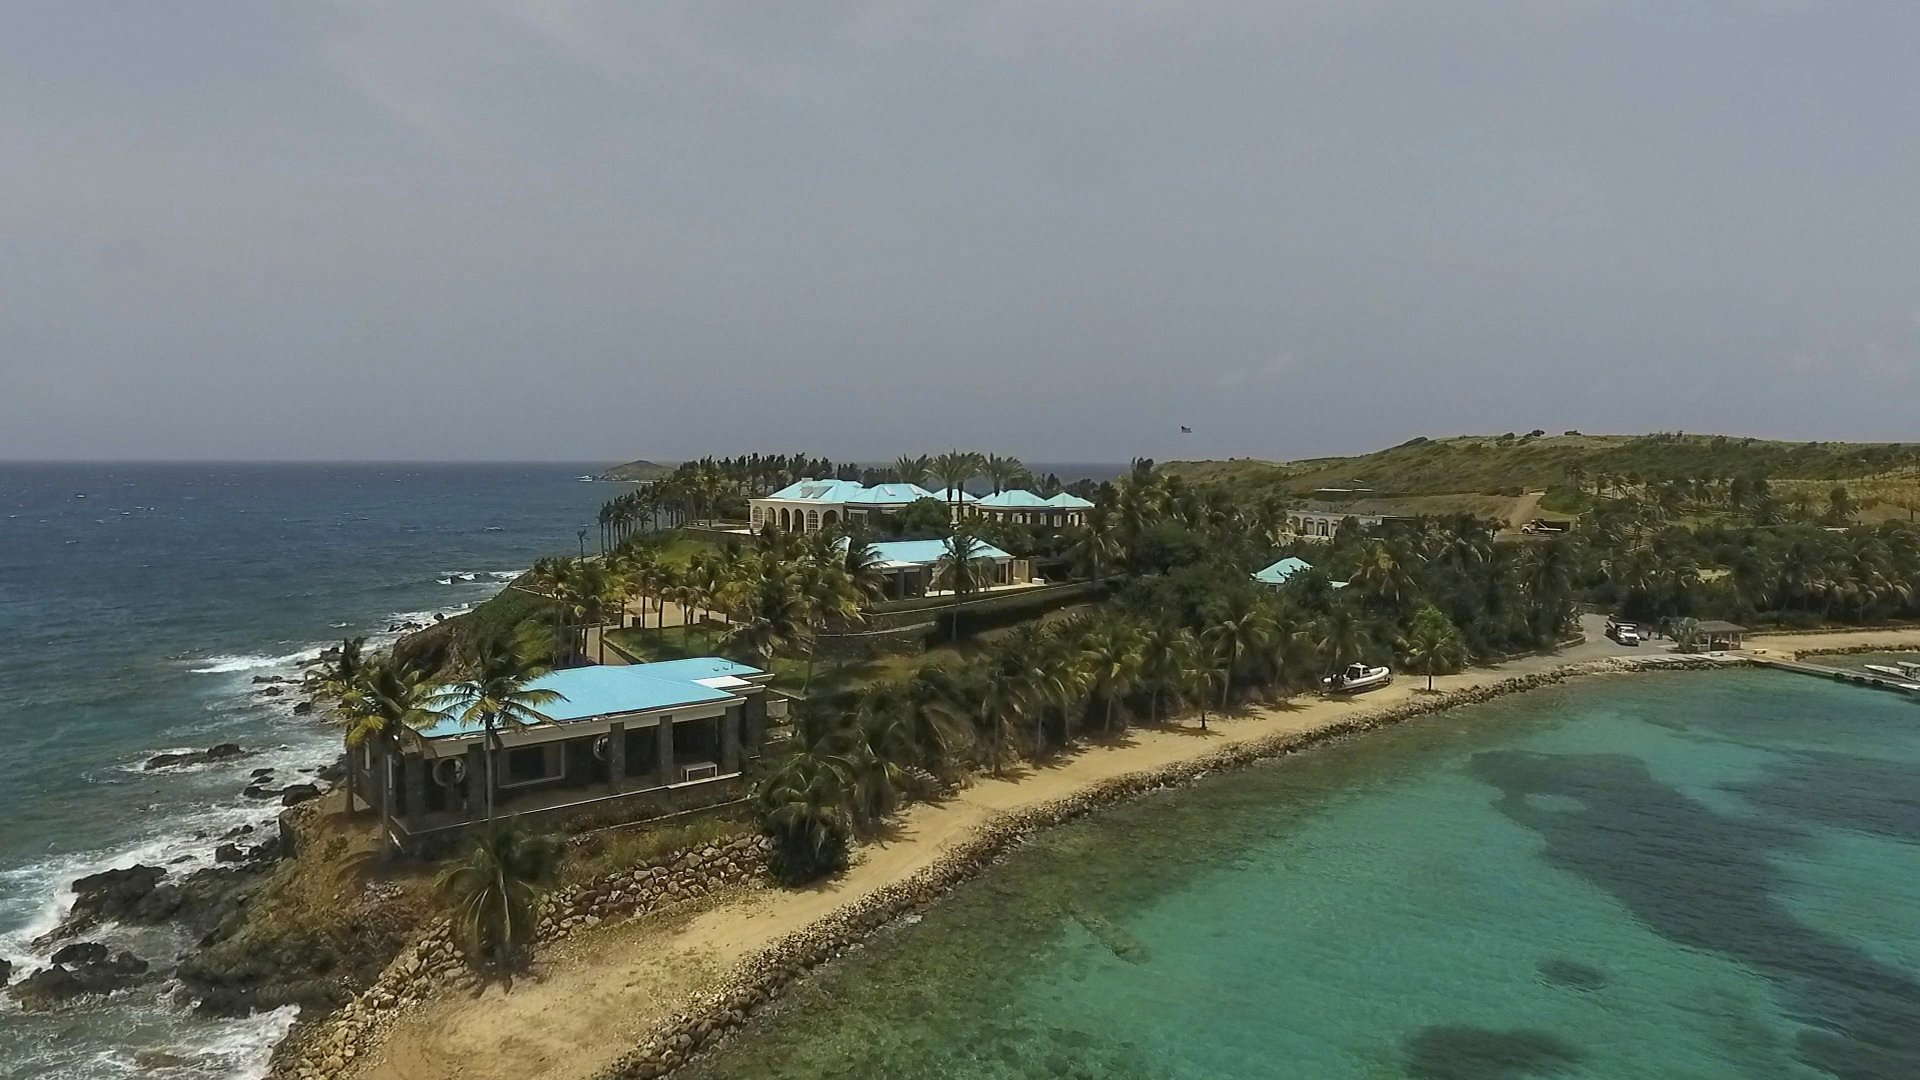 On Caribbean island whispers, suspicion about Epstein